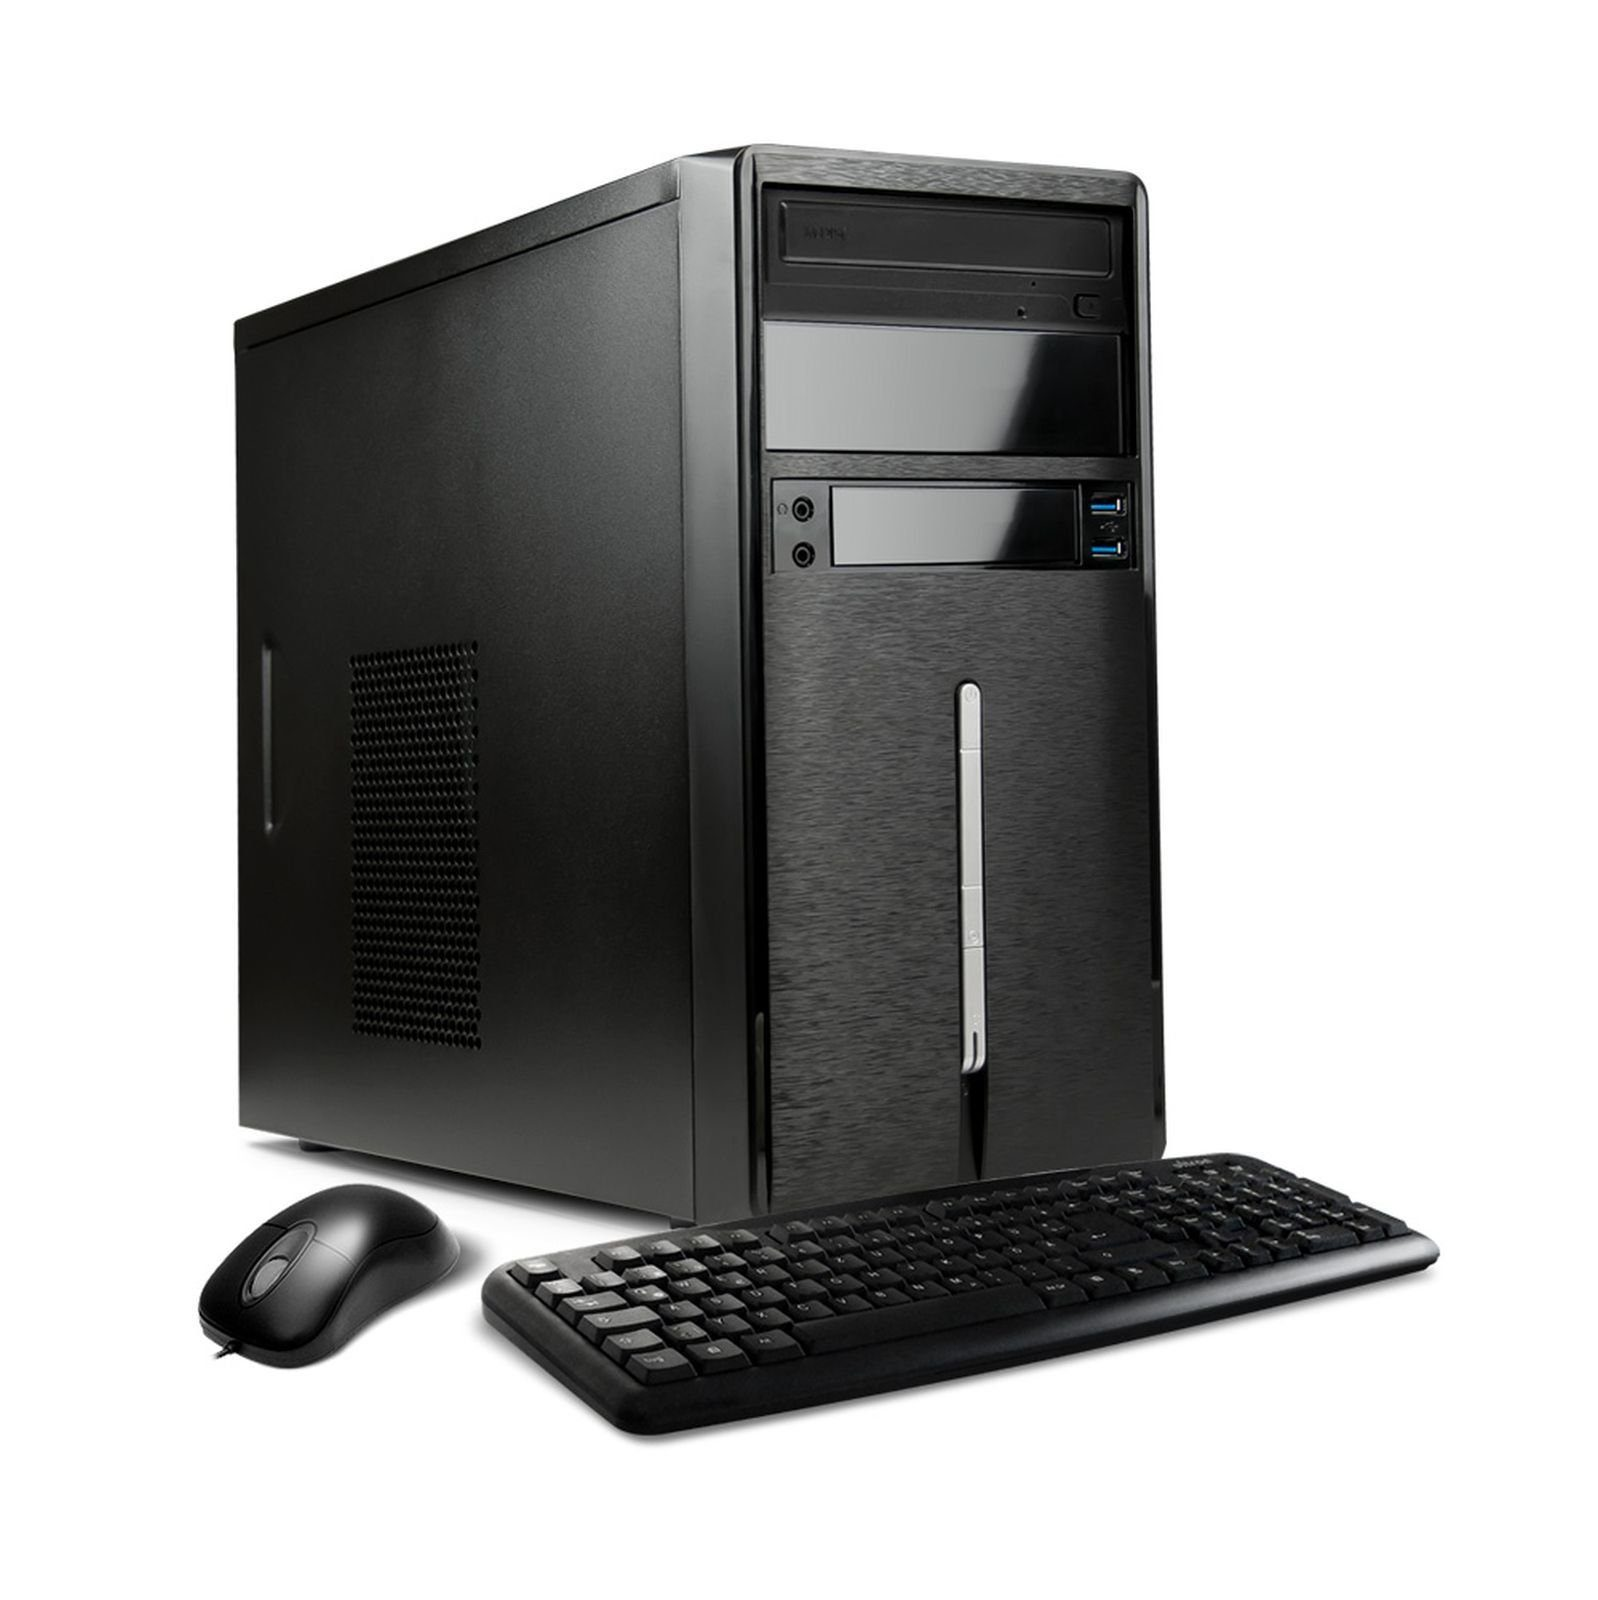 VCM PC / Intel Core i3-6100 (2x 3.7 GHz) / Intel HD Grafik »/ 4 GB RAM / Windows 10«